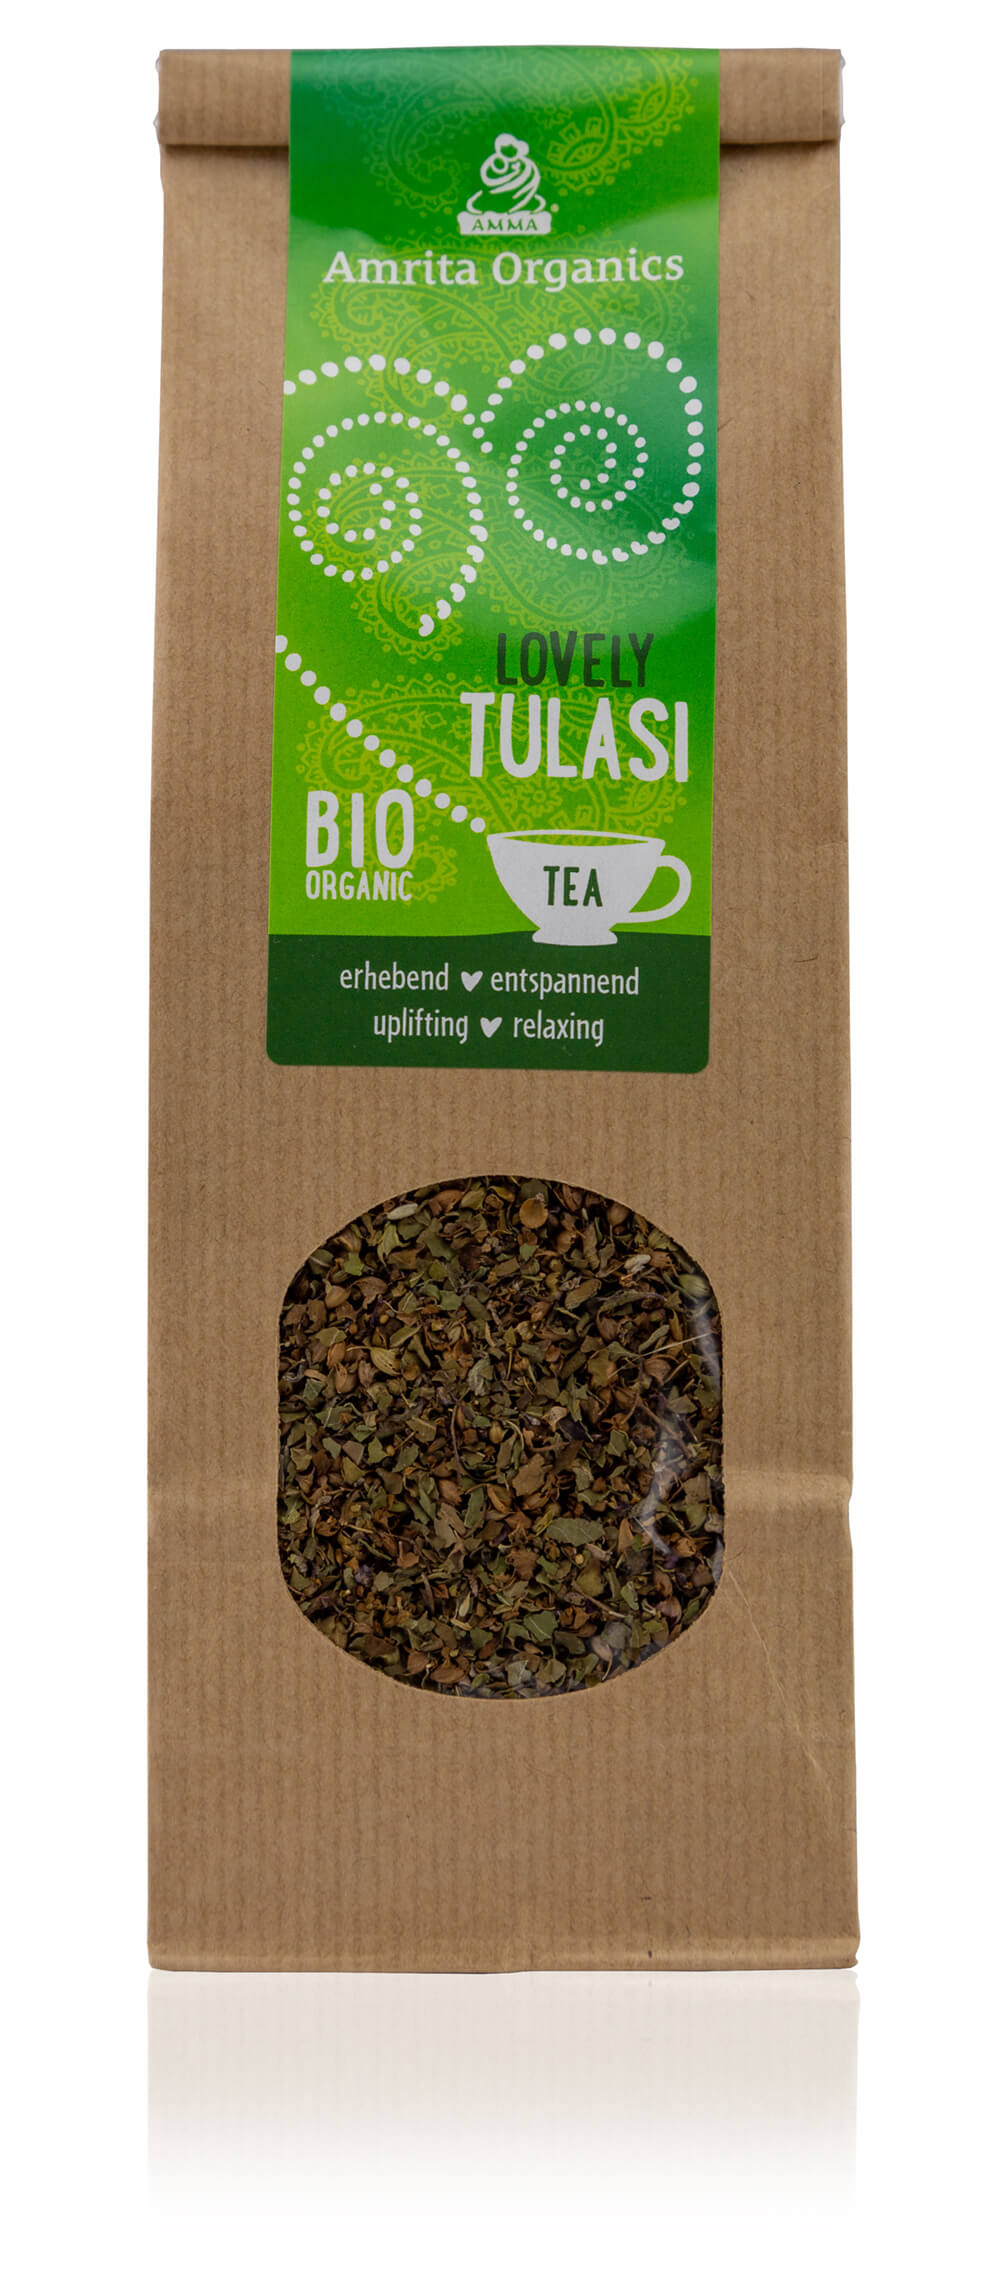 Lovely Tulsi Tea, organic